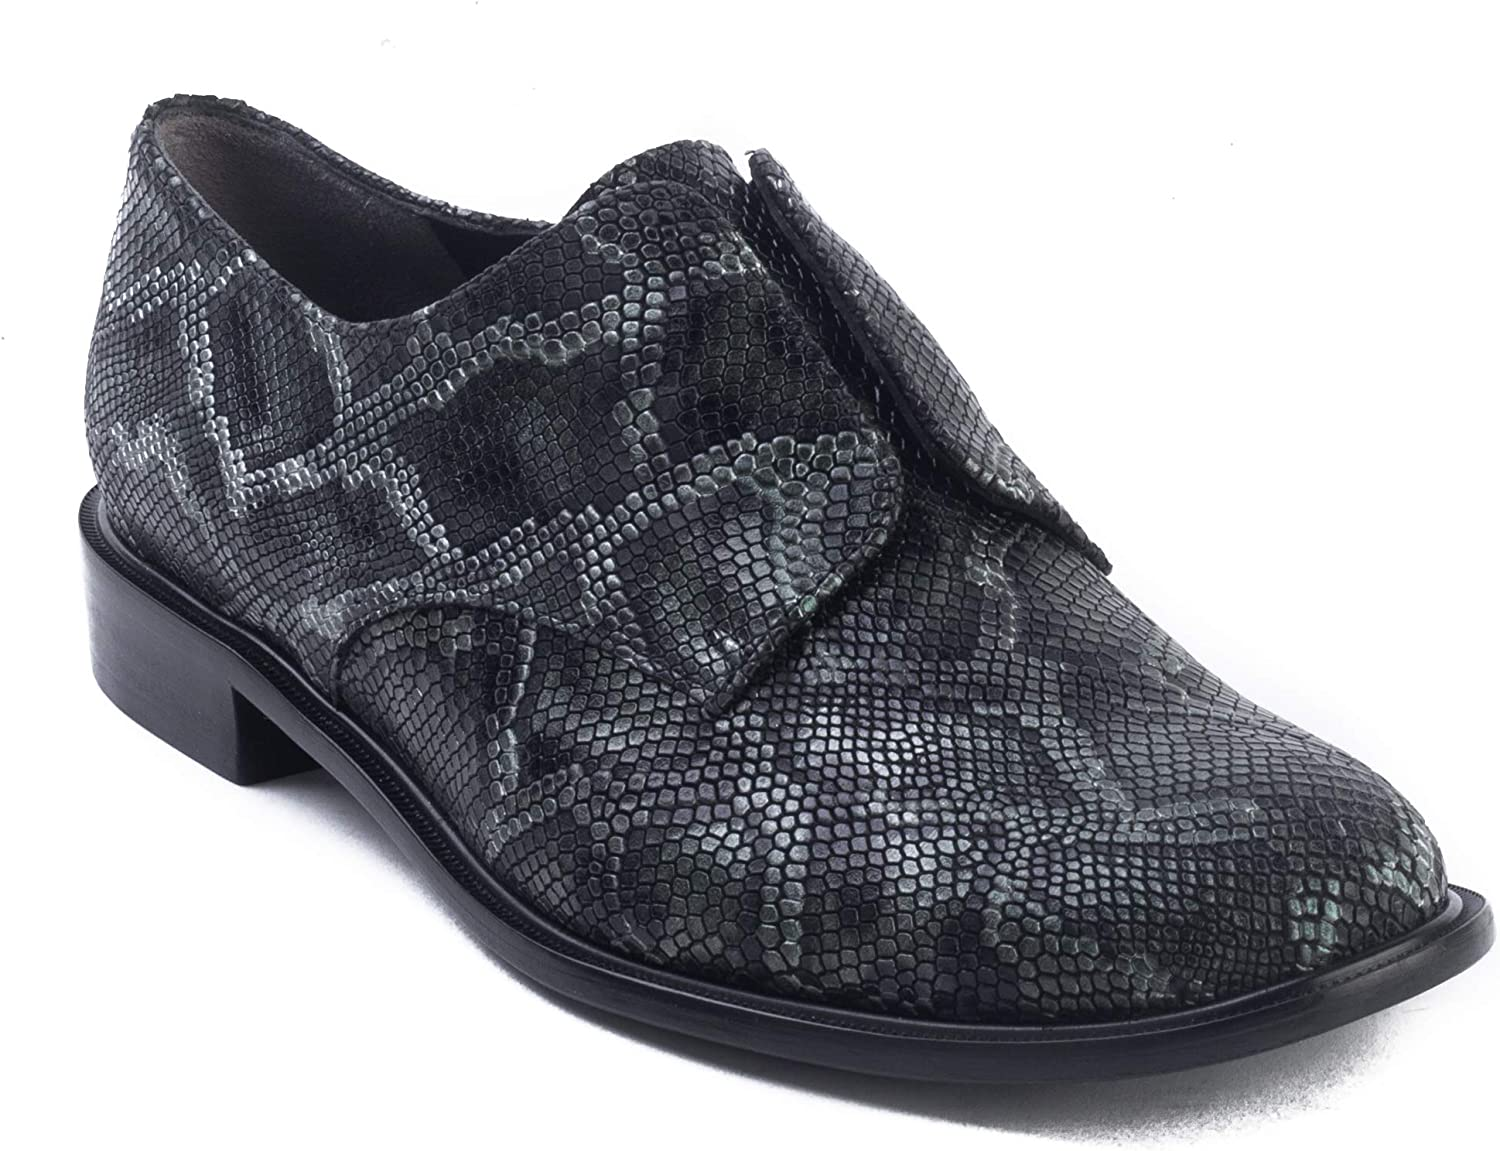 Robert Clergerie Women's 'Jam' Leather Laceless Oxford Green Reptile